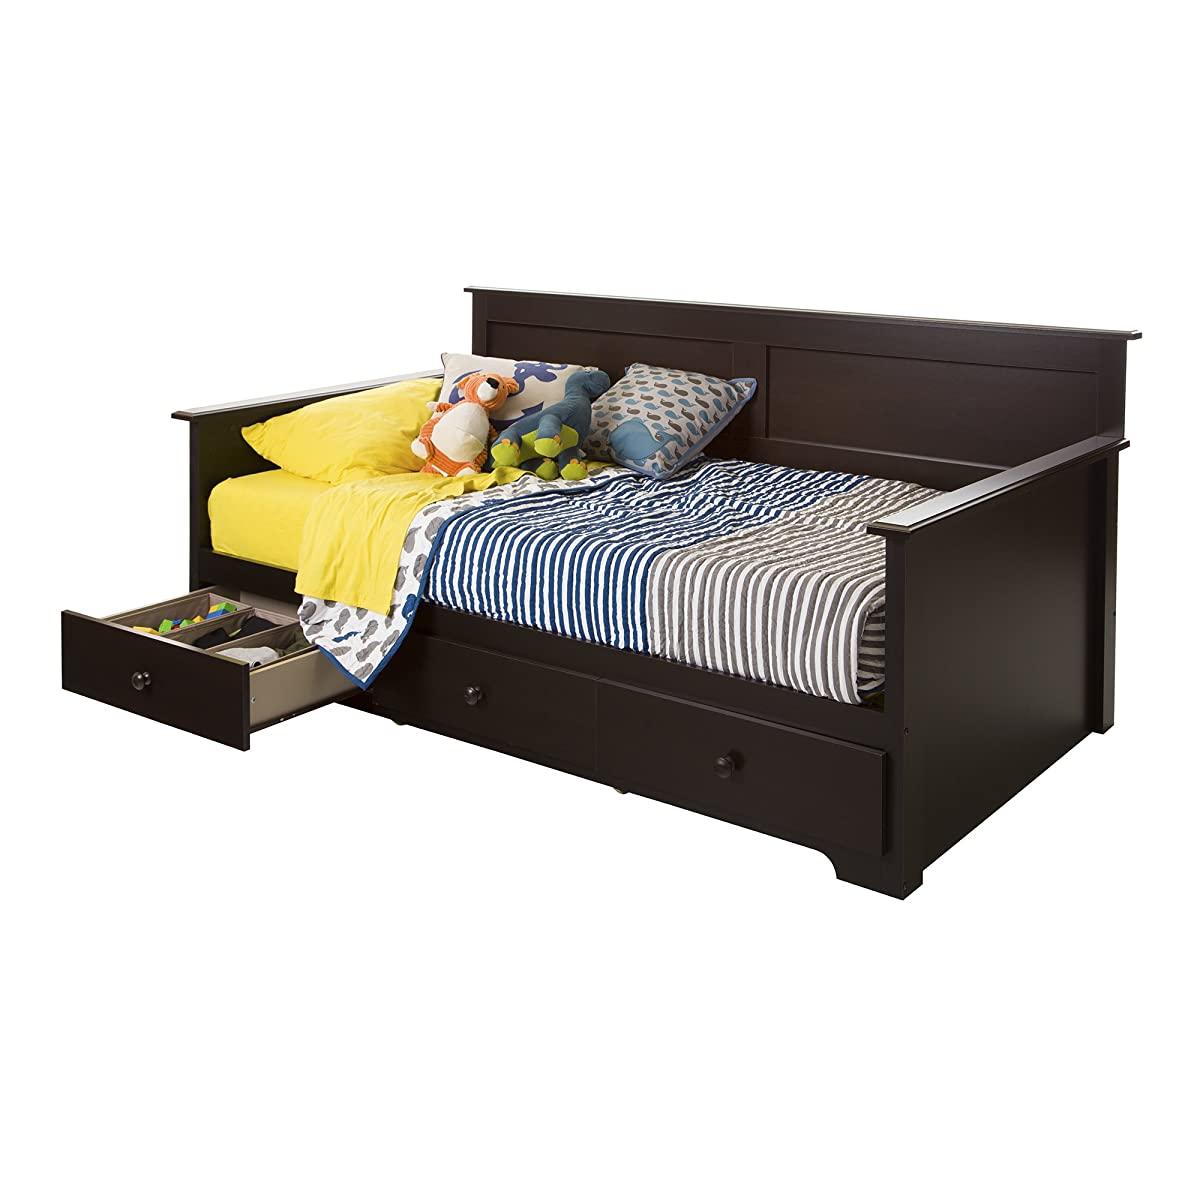 "South Shore Summer Breeze Twin Day Bed with Storage (39""), Chocolate"